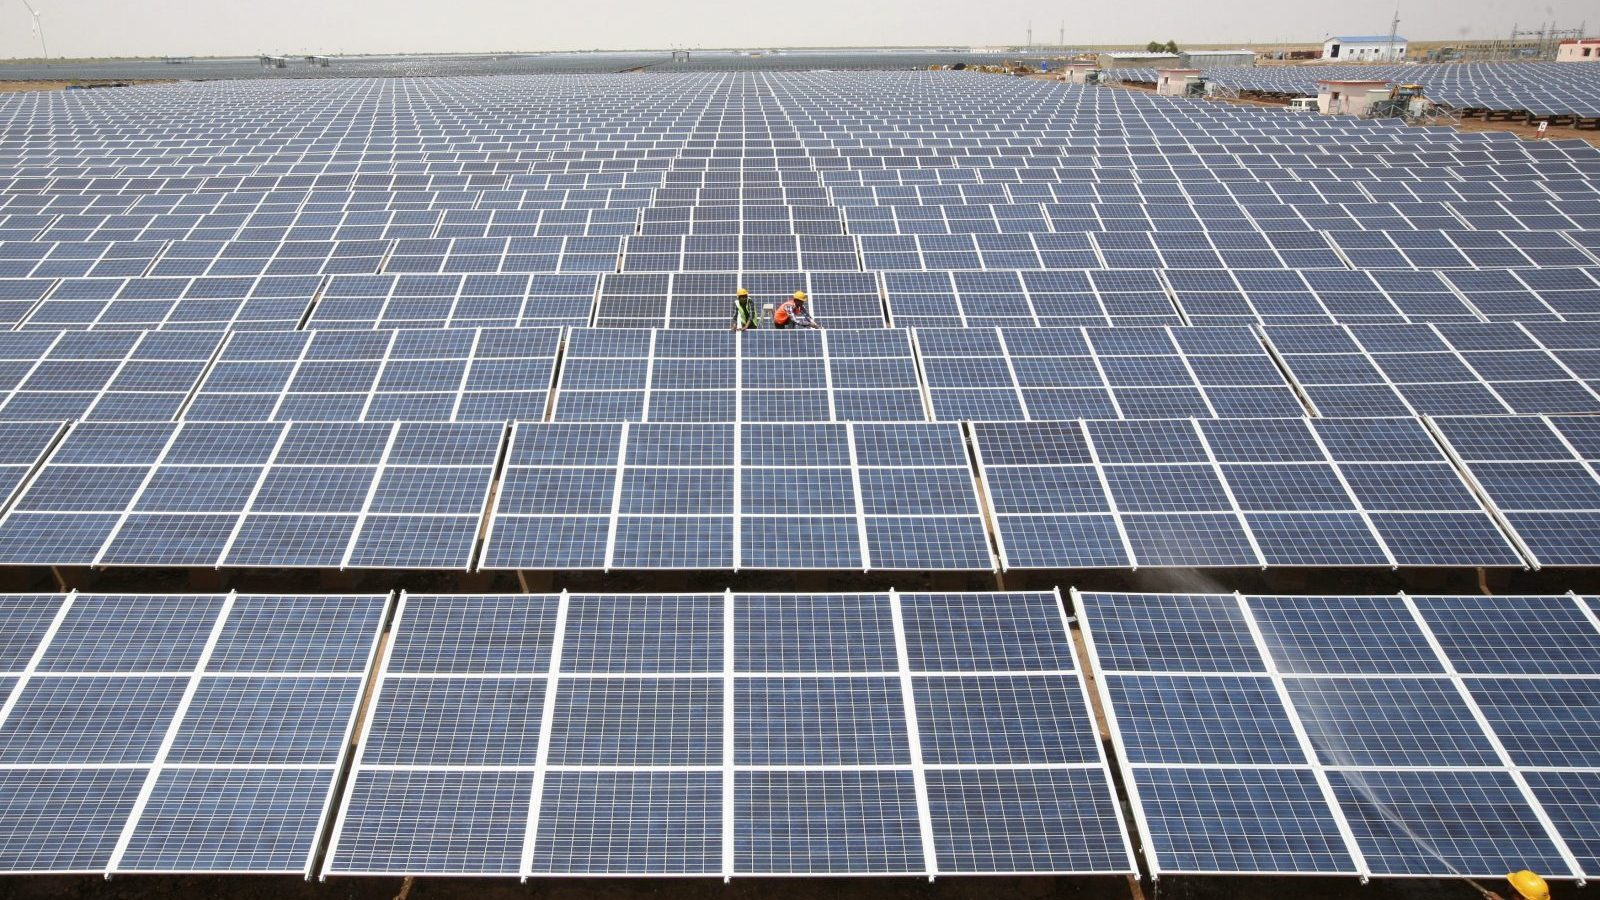 India's solar power sector stares at another crisis as Modi